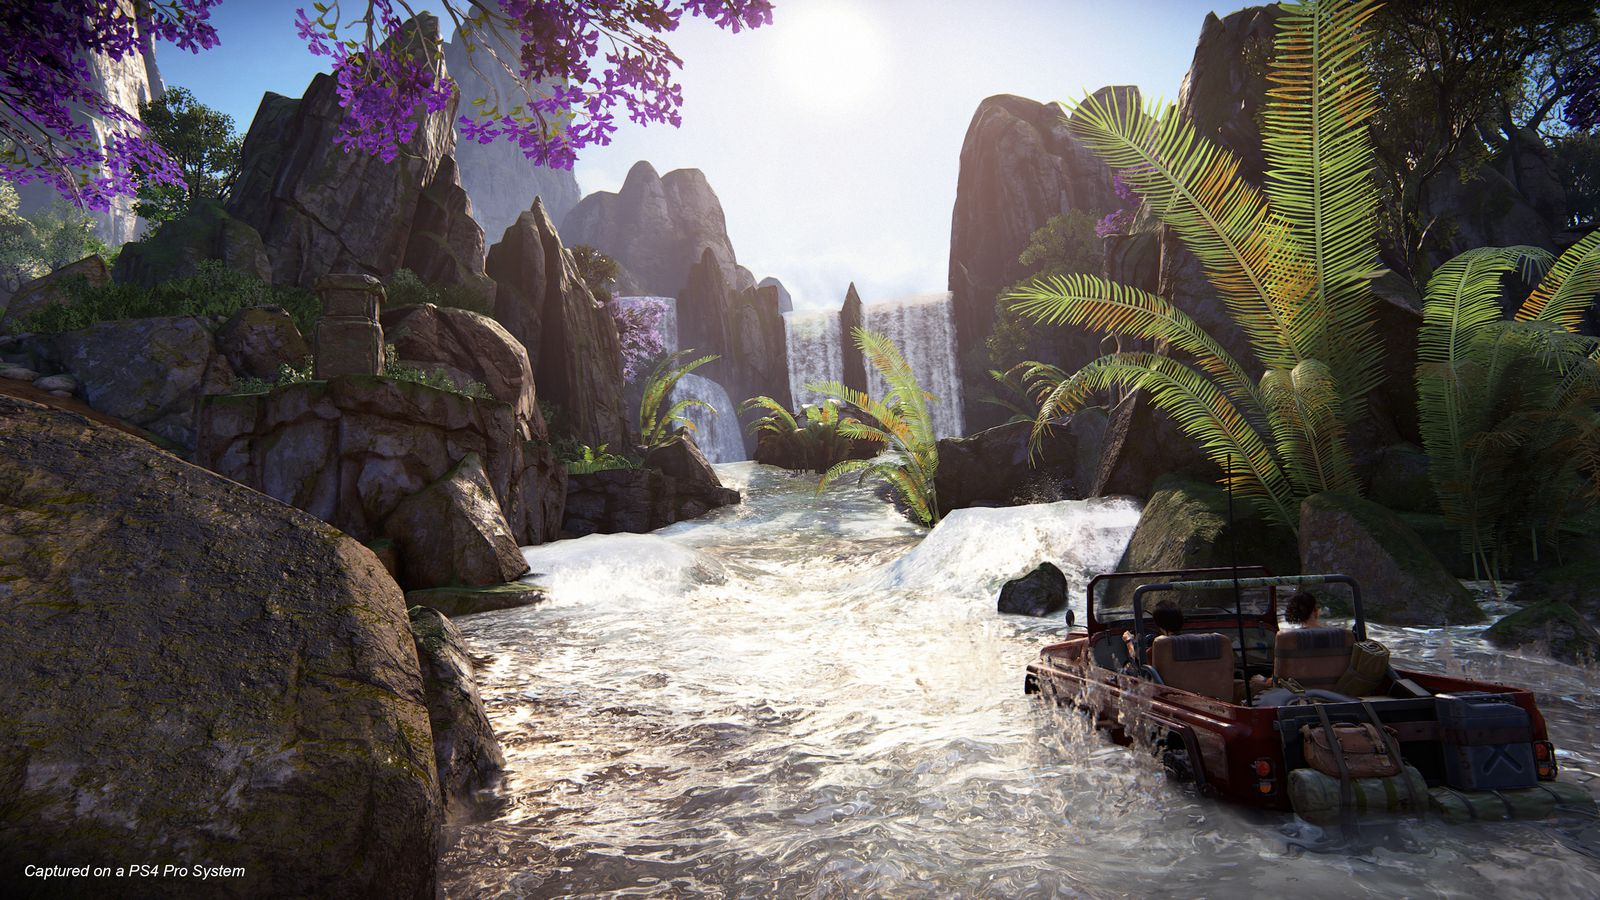 Uncharted: The Lost Legacy feels like a true Uncharted game